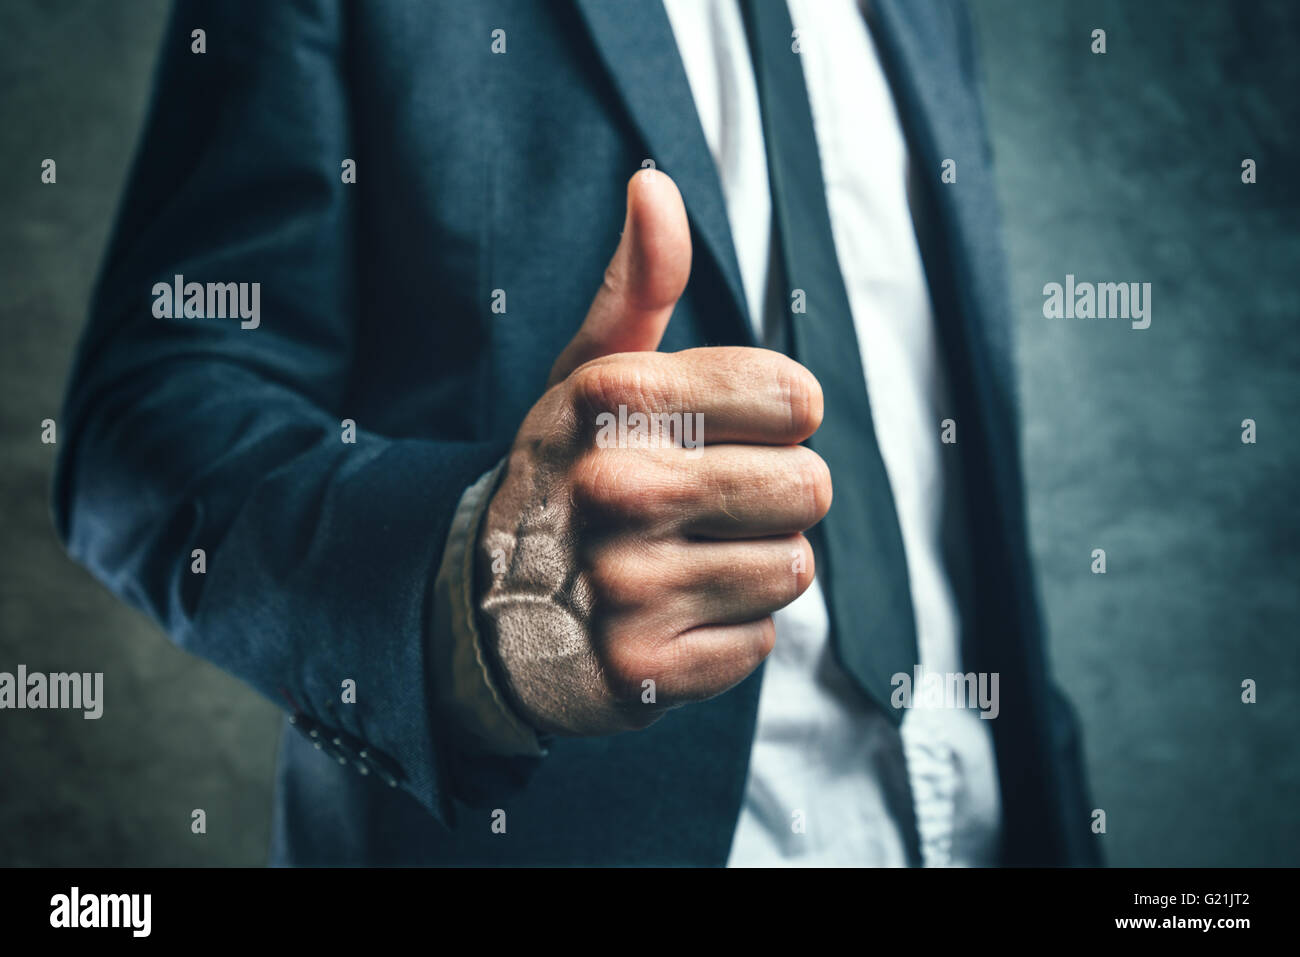 Gaining bosses approval, businessperson gesturing thumb up for endorsing or approving employees work, concept of - Stock Image